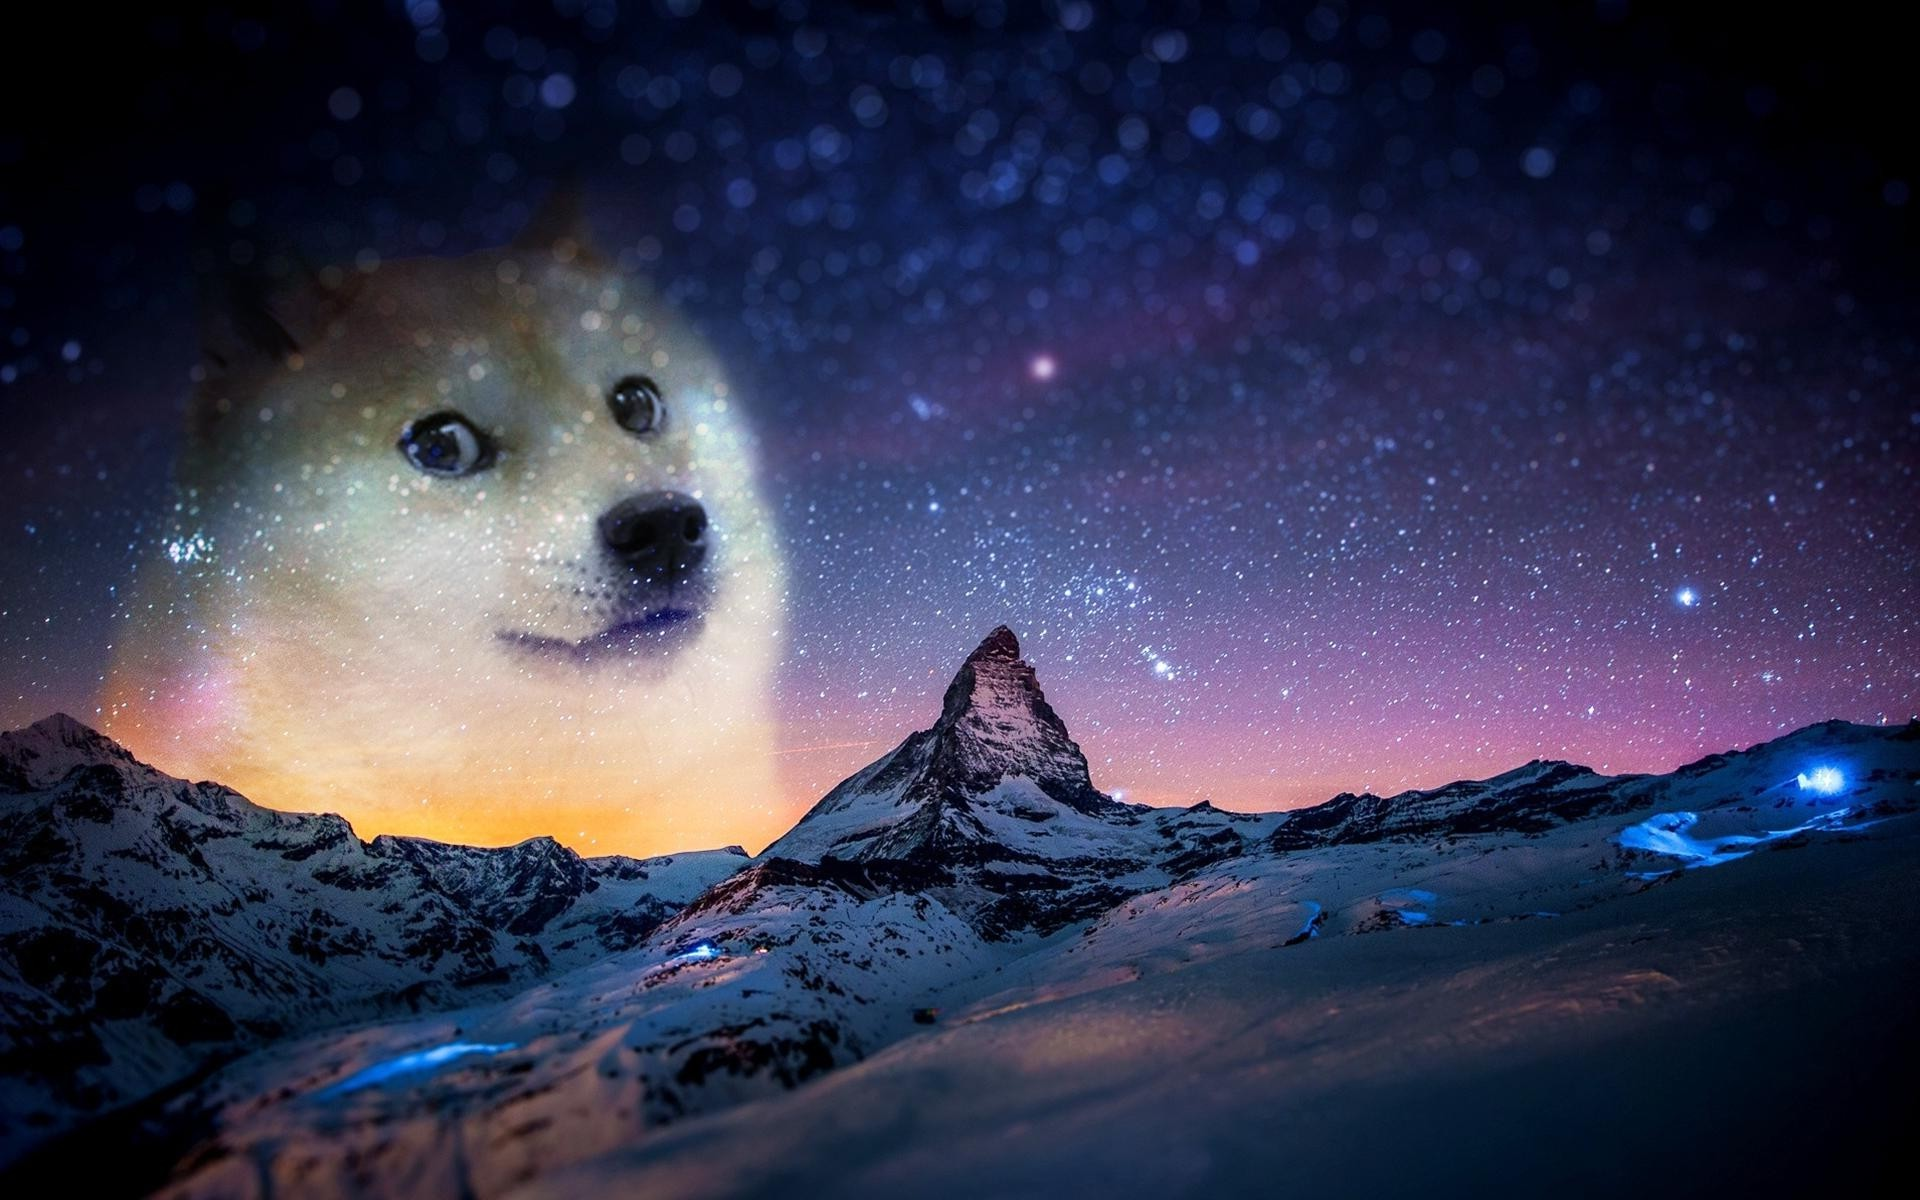 Doge Meme Wallpaper,meme , HD Wallpaper & Backgrounds